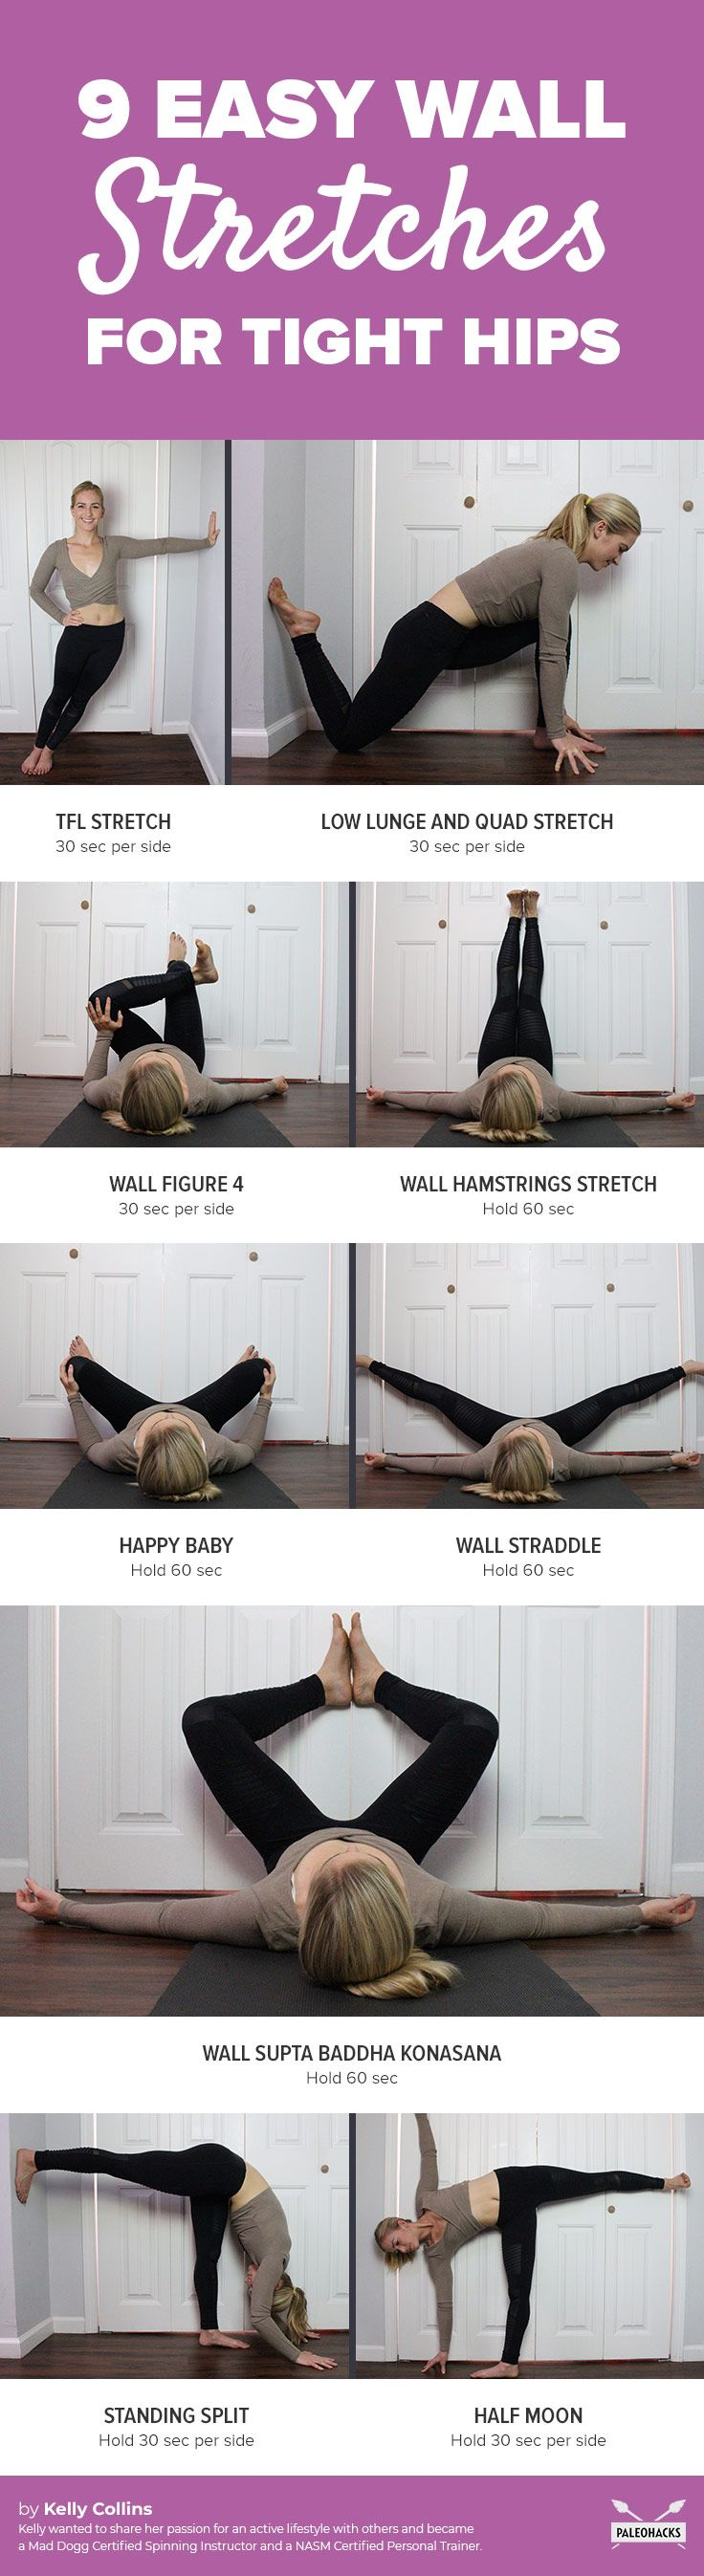 Got tight, painful hips? Do these easy, soothing wall stretches to relieve tension! Get all stretches here: http://paleo.co/wallhipstretches